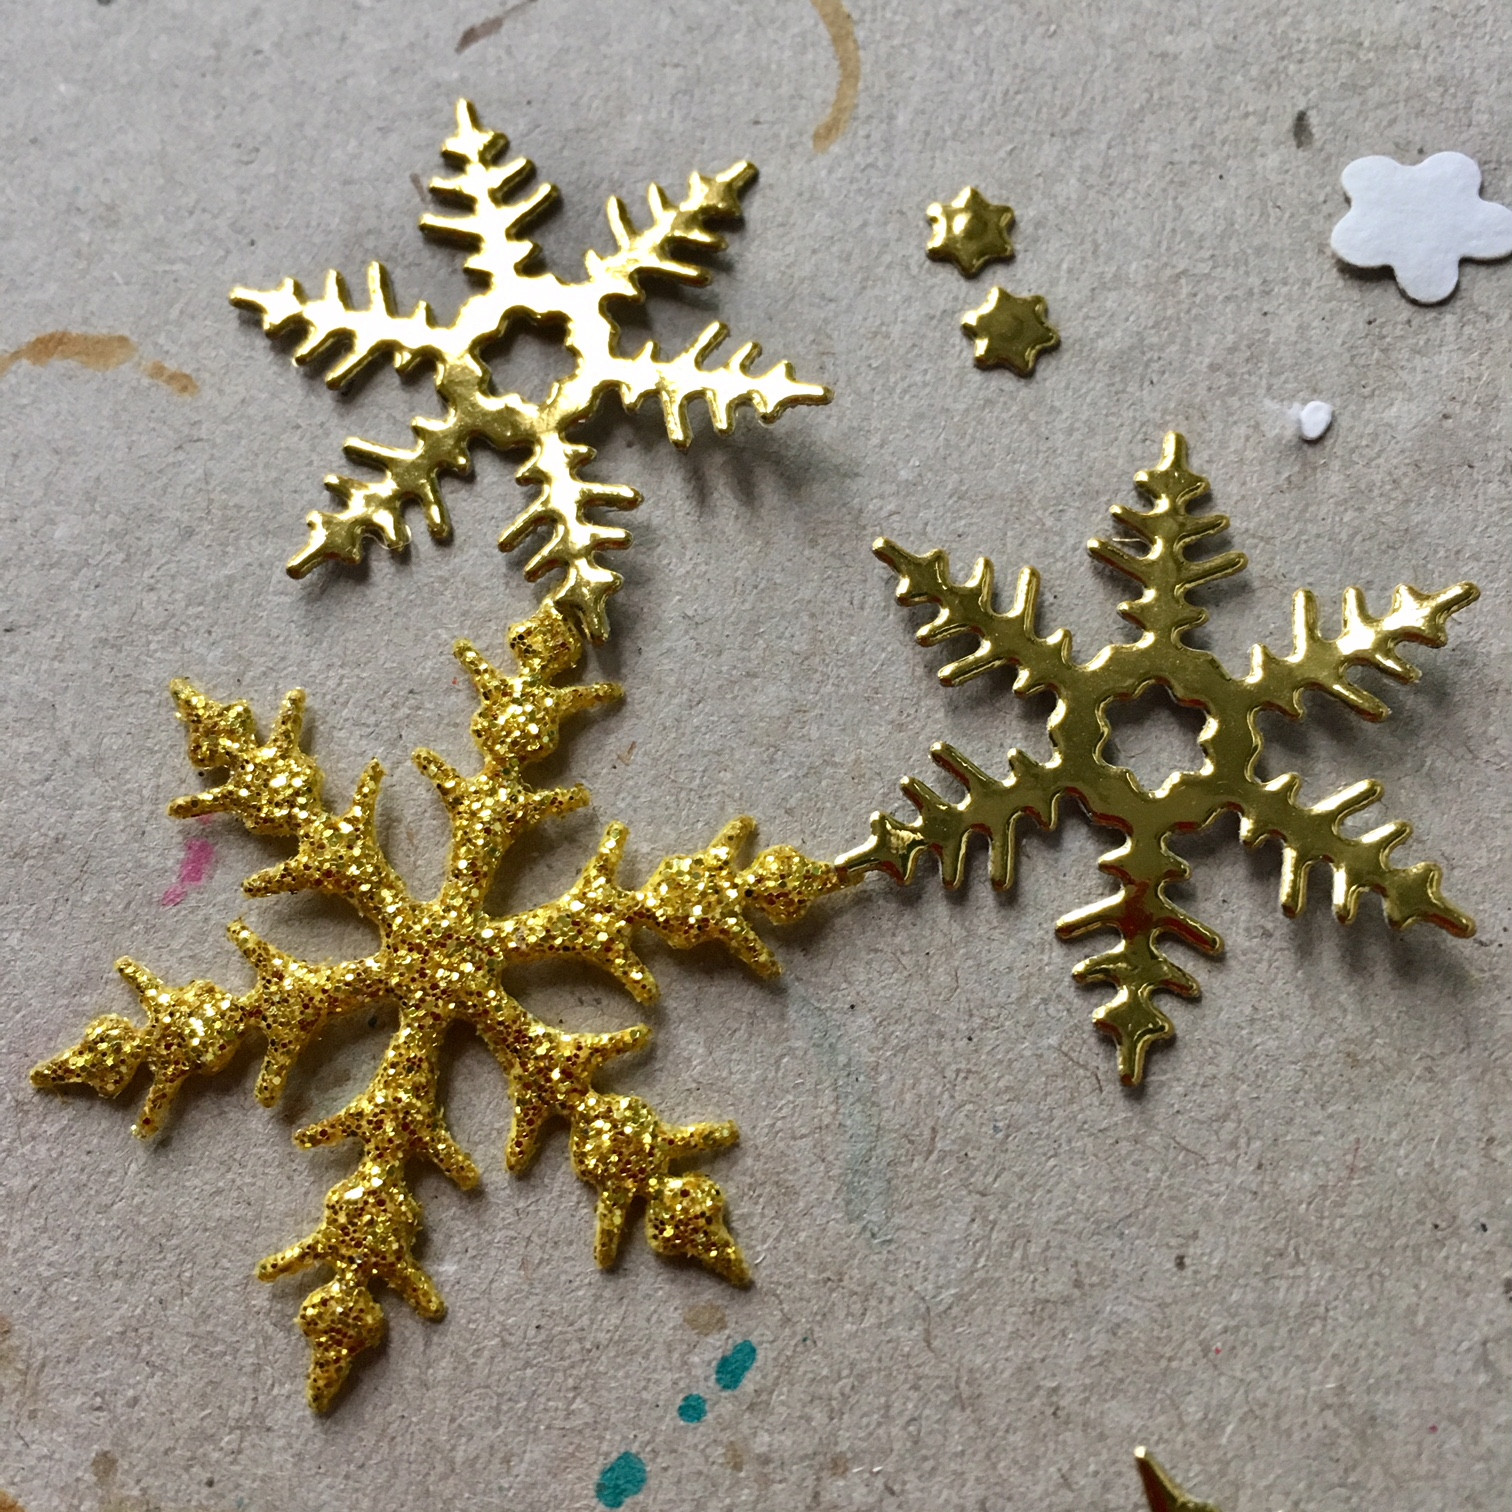 glitter and golden paper snowflakes